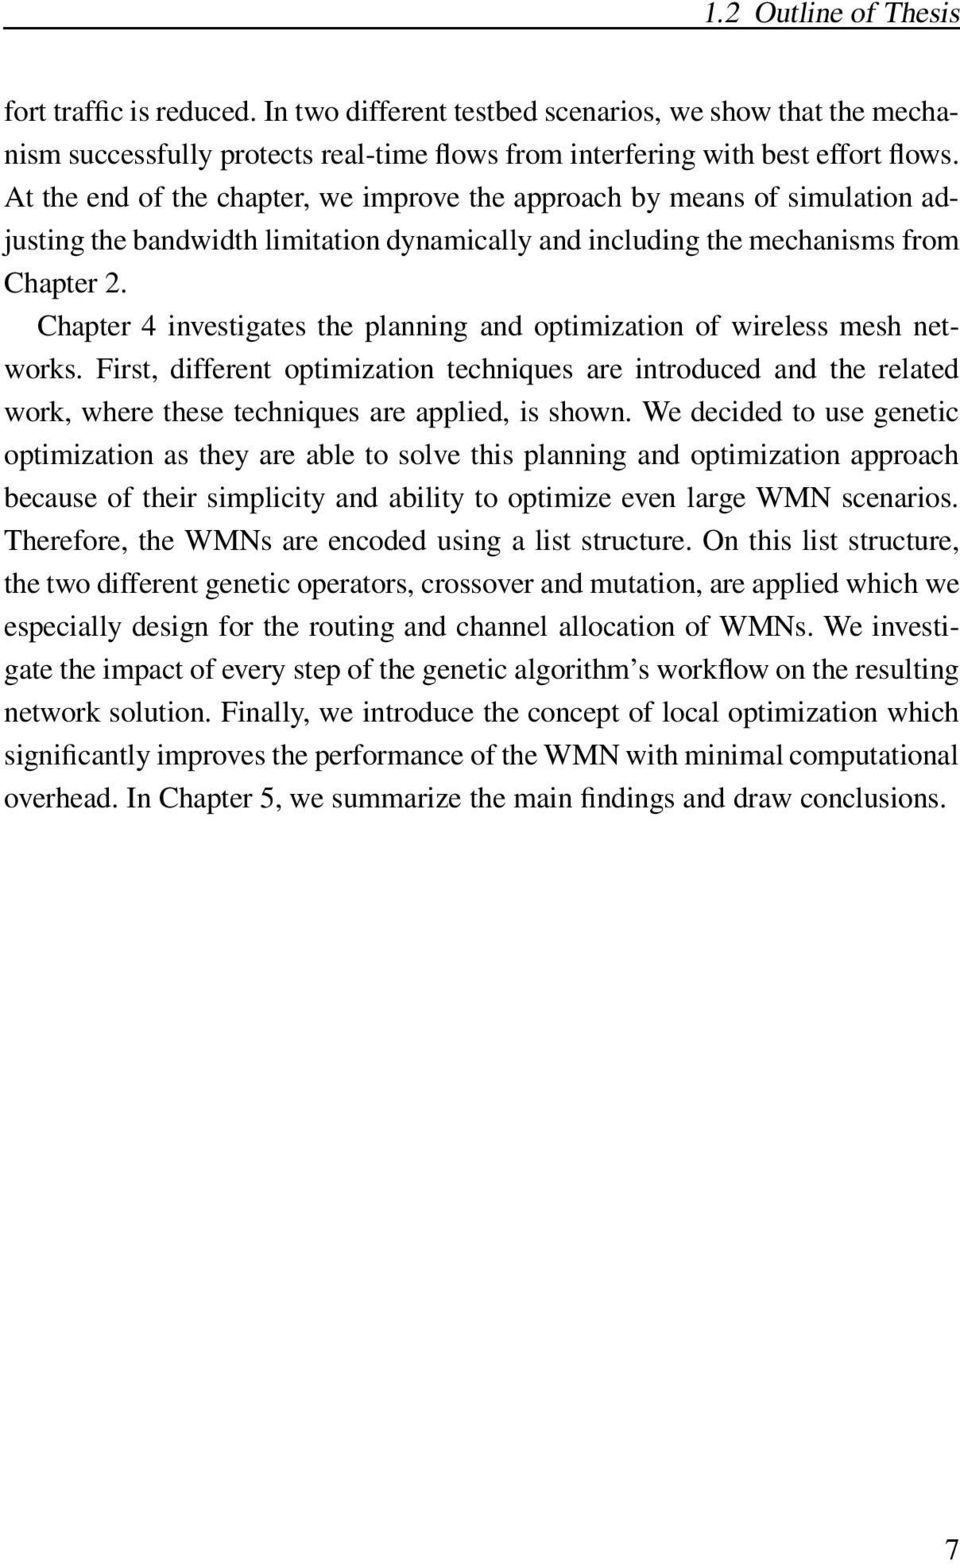 Chapter 4 investigates the planning and optimization of wireless mesh networks.